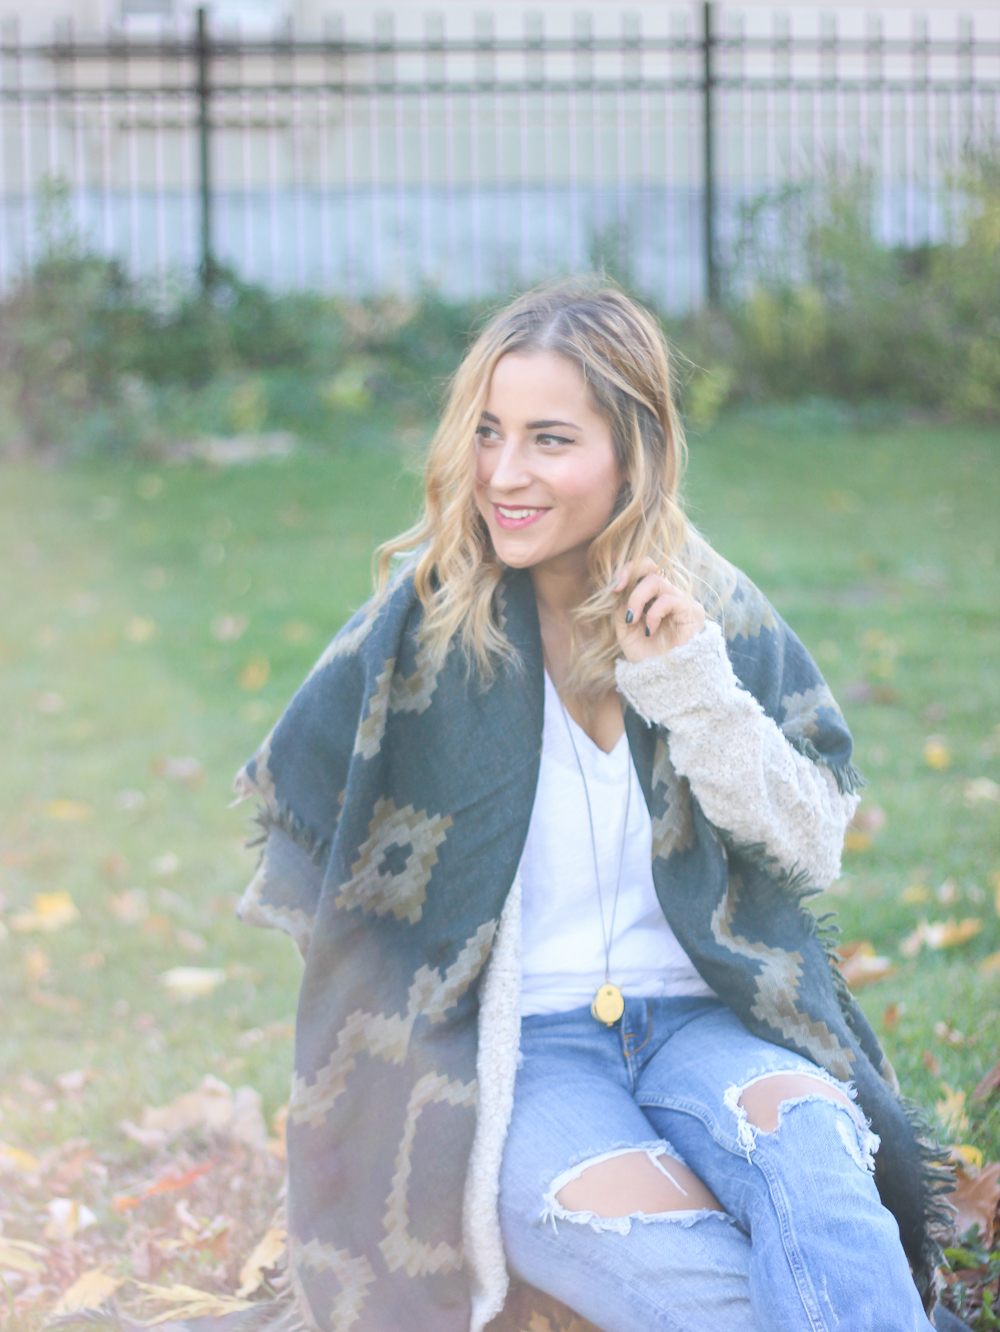 Easy fall outfit idea for the weekend - Aritzia blanket scarf and boyfriend jeans